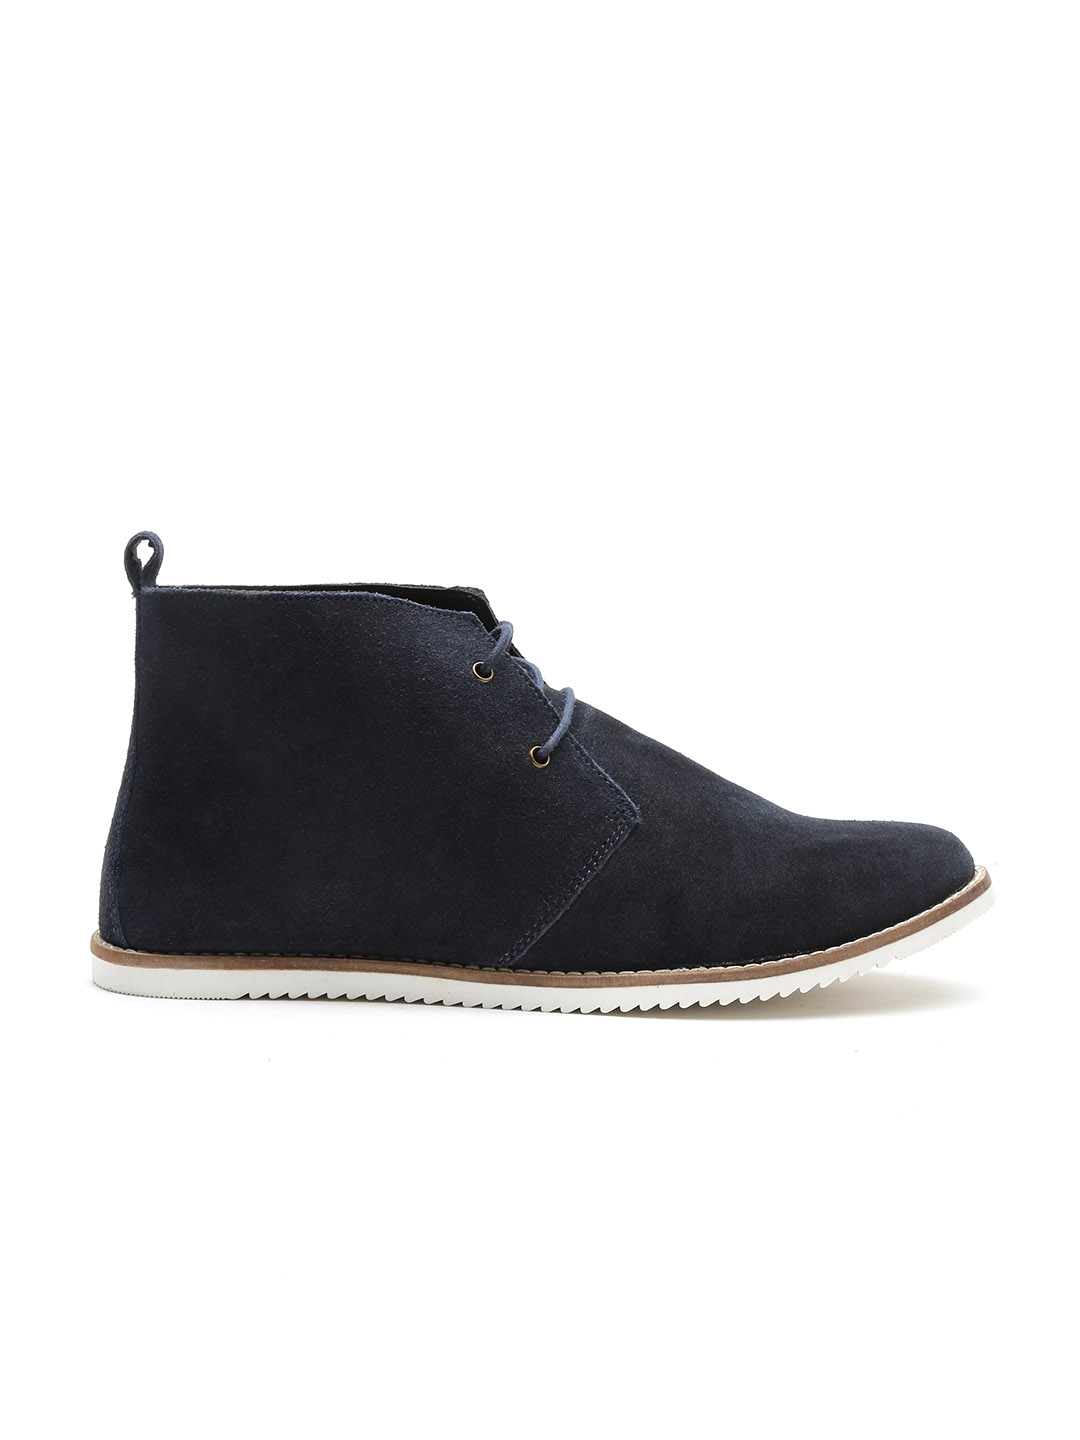 320fc593ff4c3 Buy Carlton London Women Navy Mid Top Flat Boots - Casual Shoes for ...